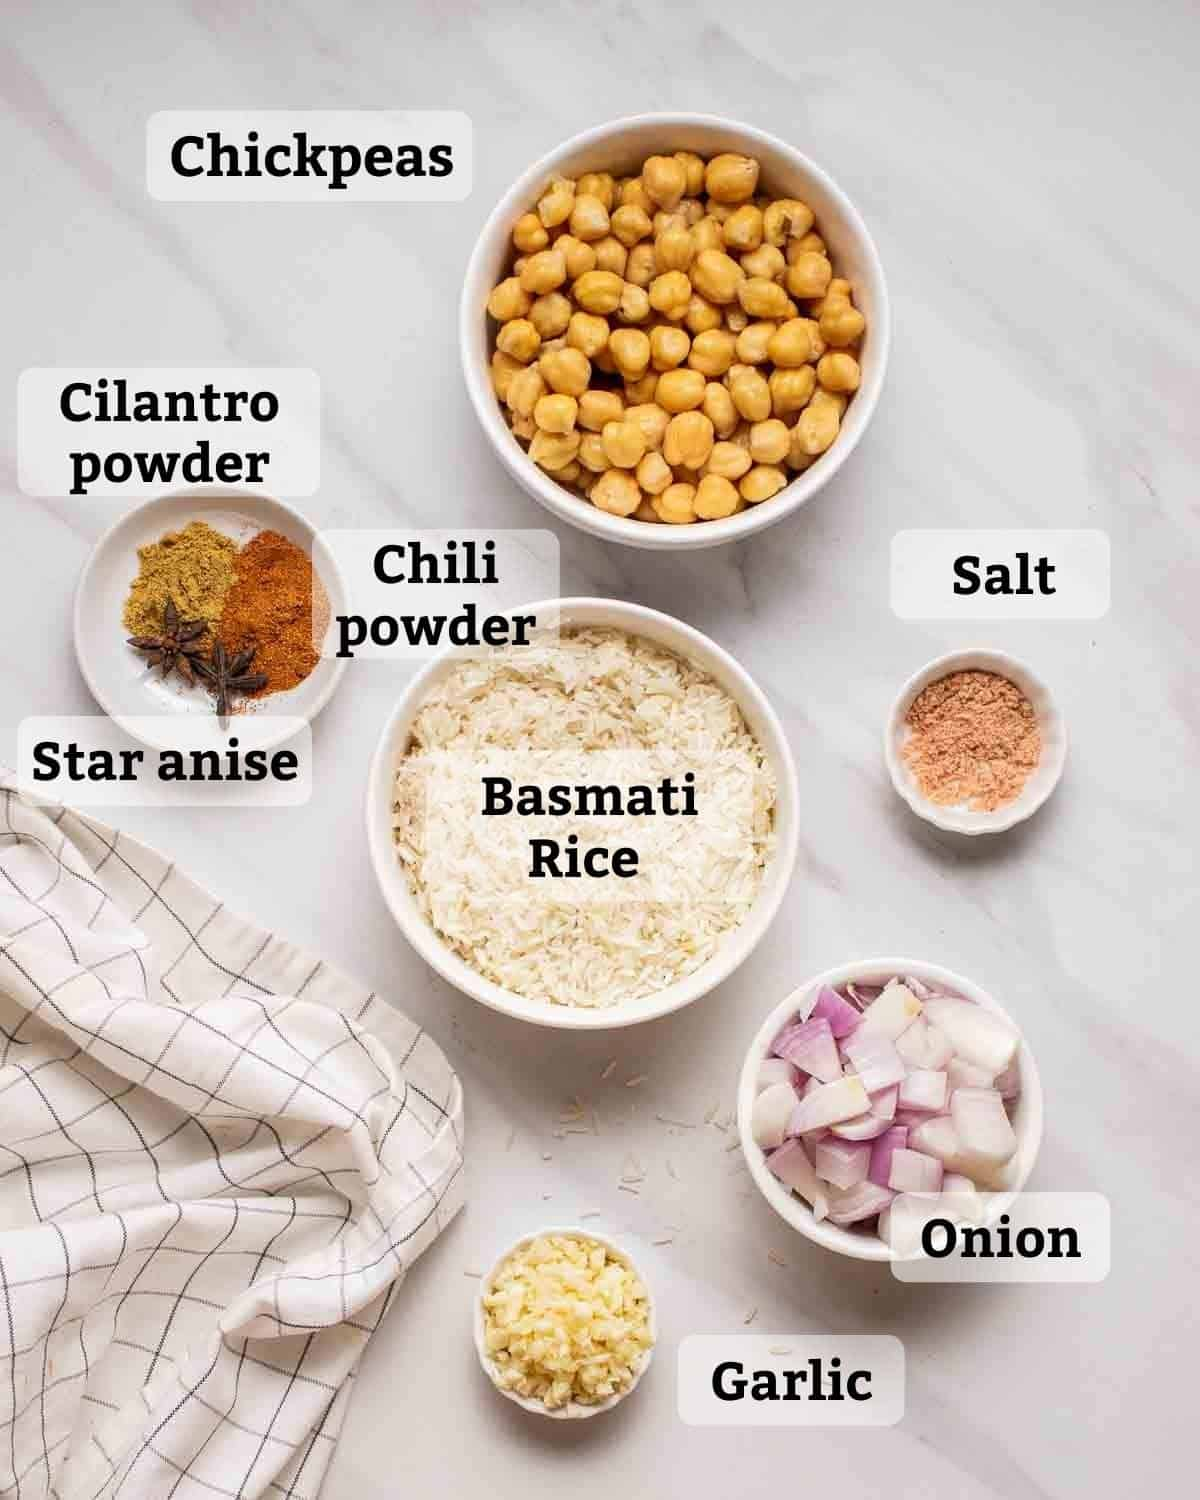 Ingredients needed like rice, chickpeas, onion, garlic and spices on a white marbled background.